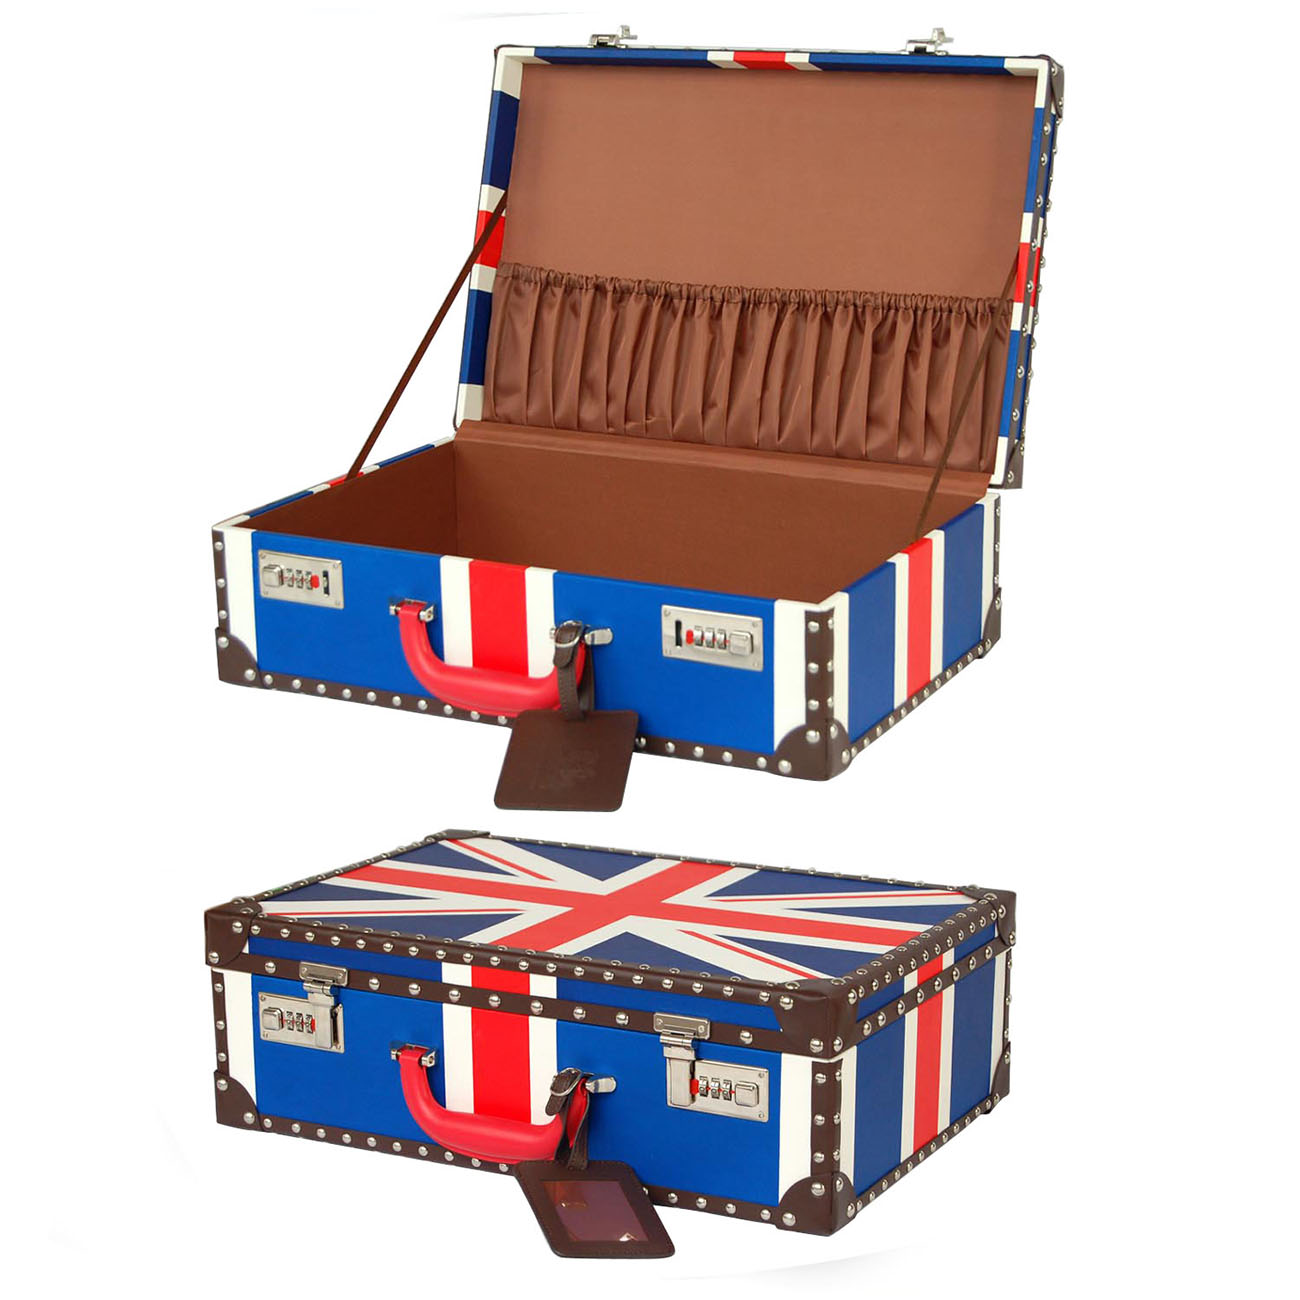 Chinese factory small exquisite lady leather suitcase storage box